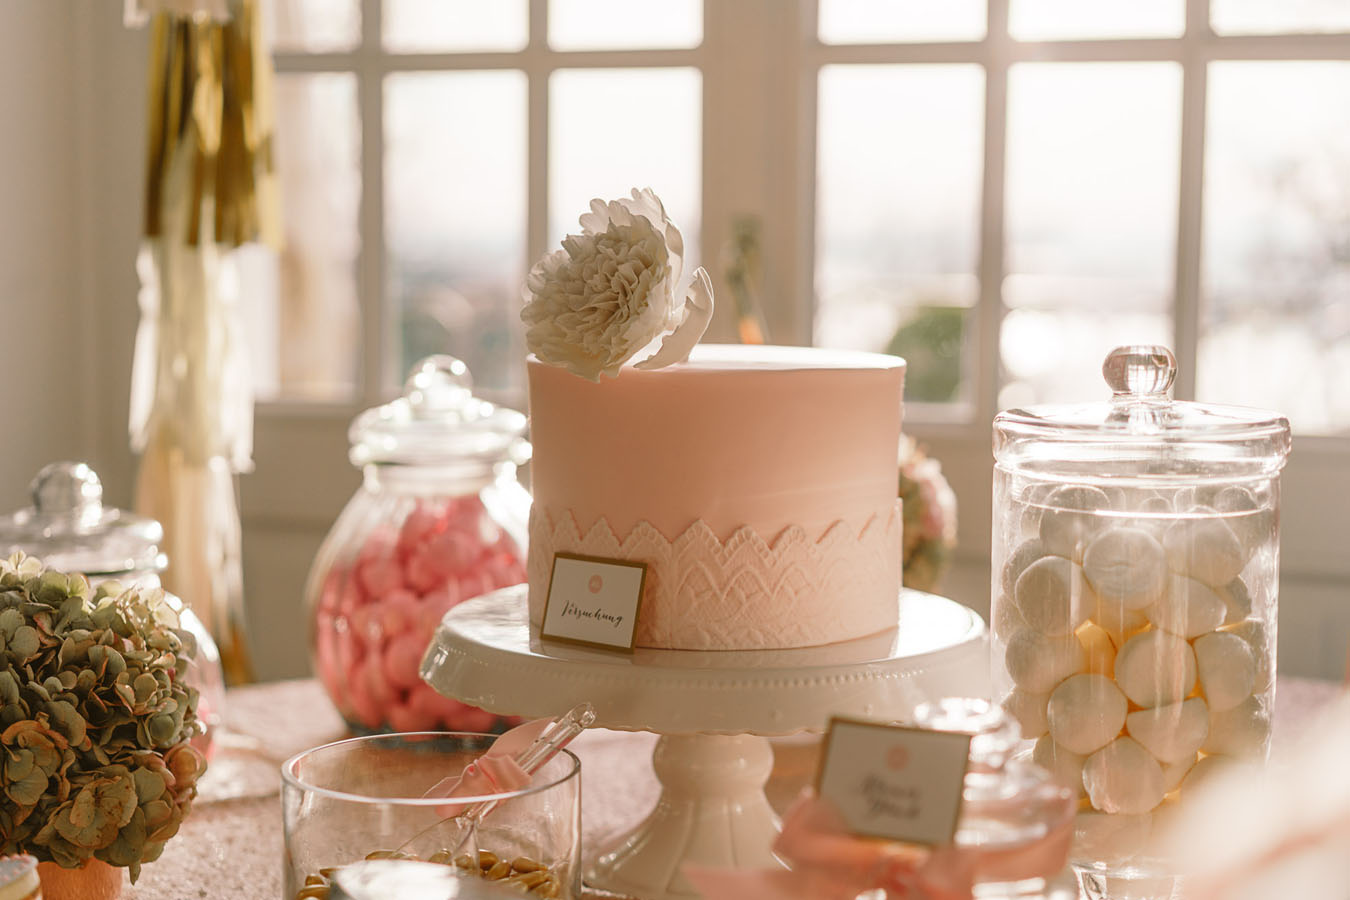 Paris City of Love Sweet Table Schildchen mit Torte